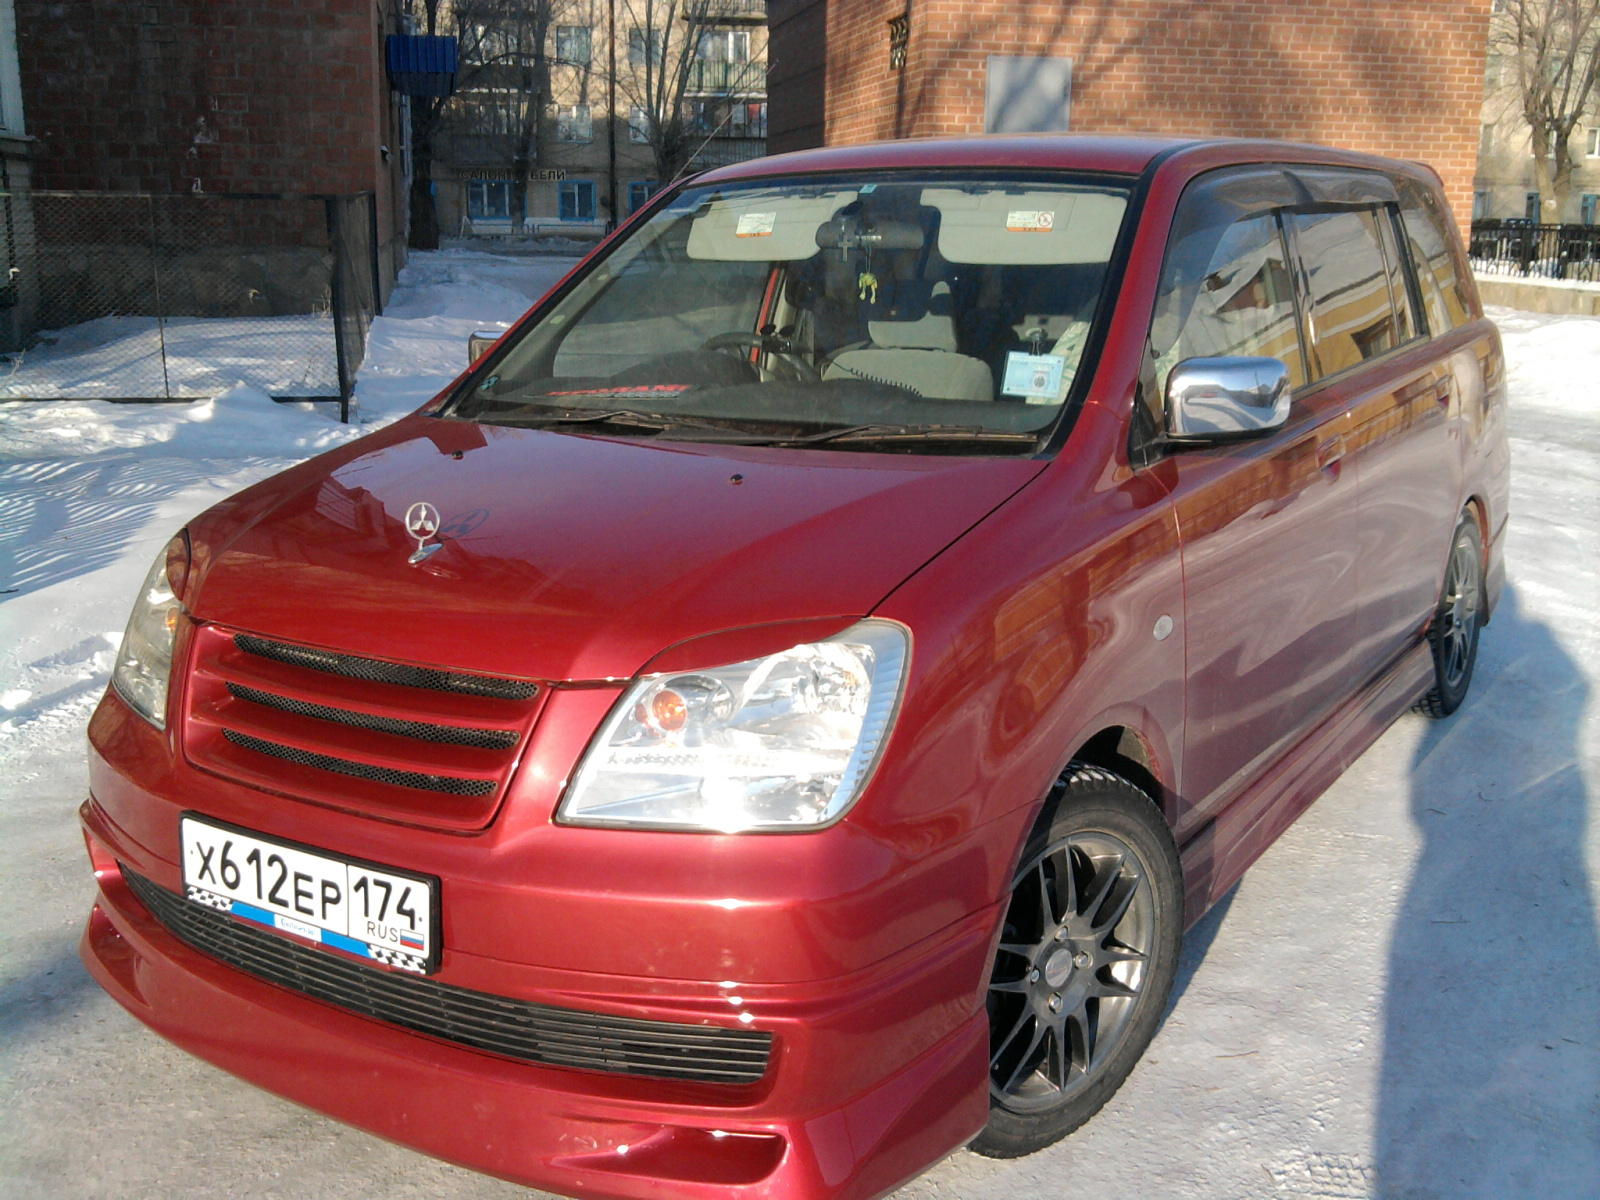 2003 Mitsubishi Dion   pictures, information and specs - Auto